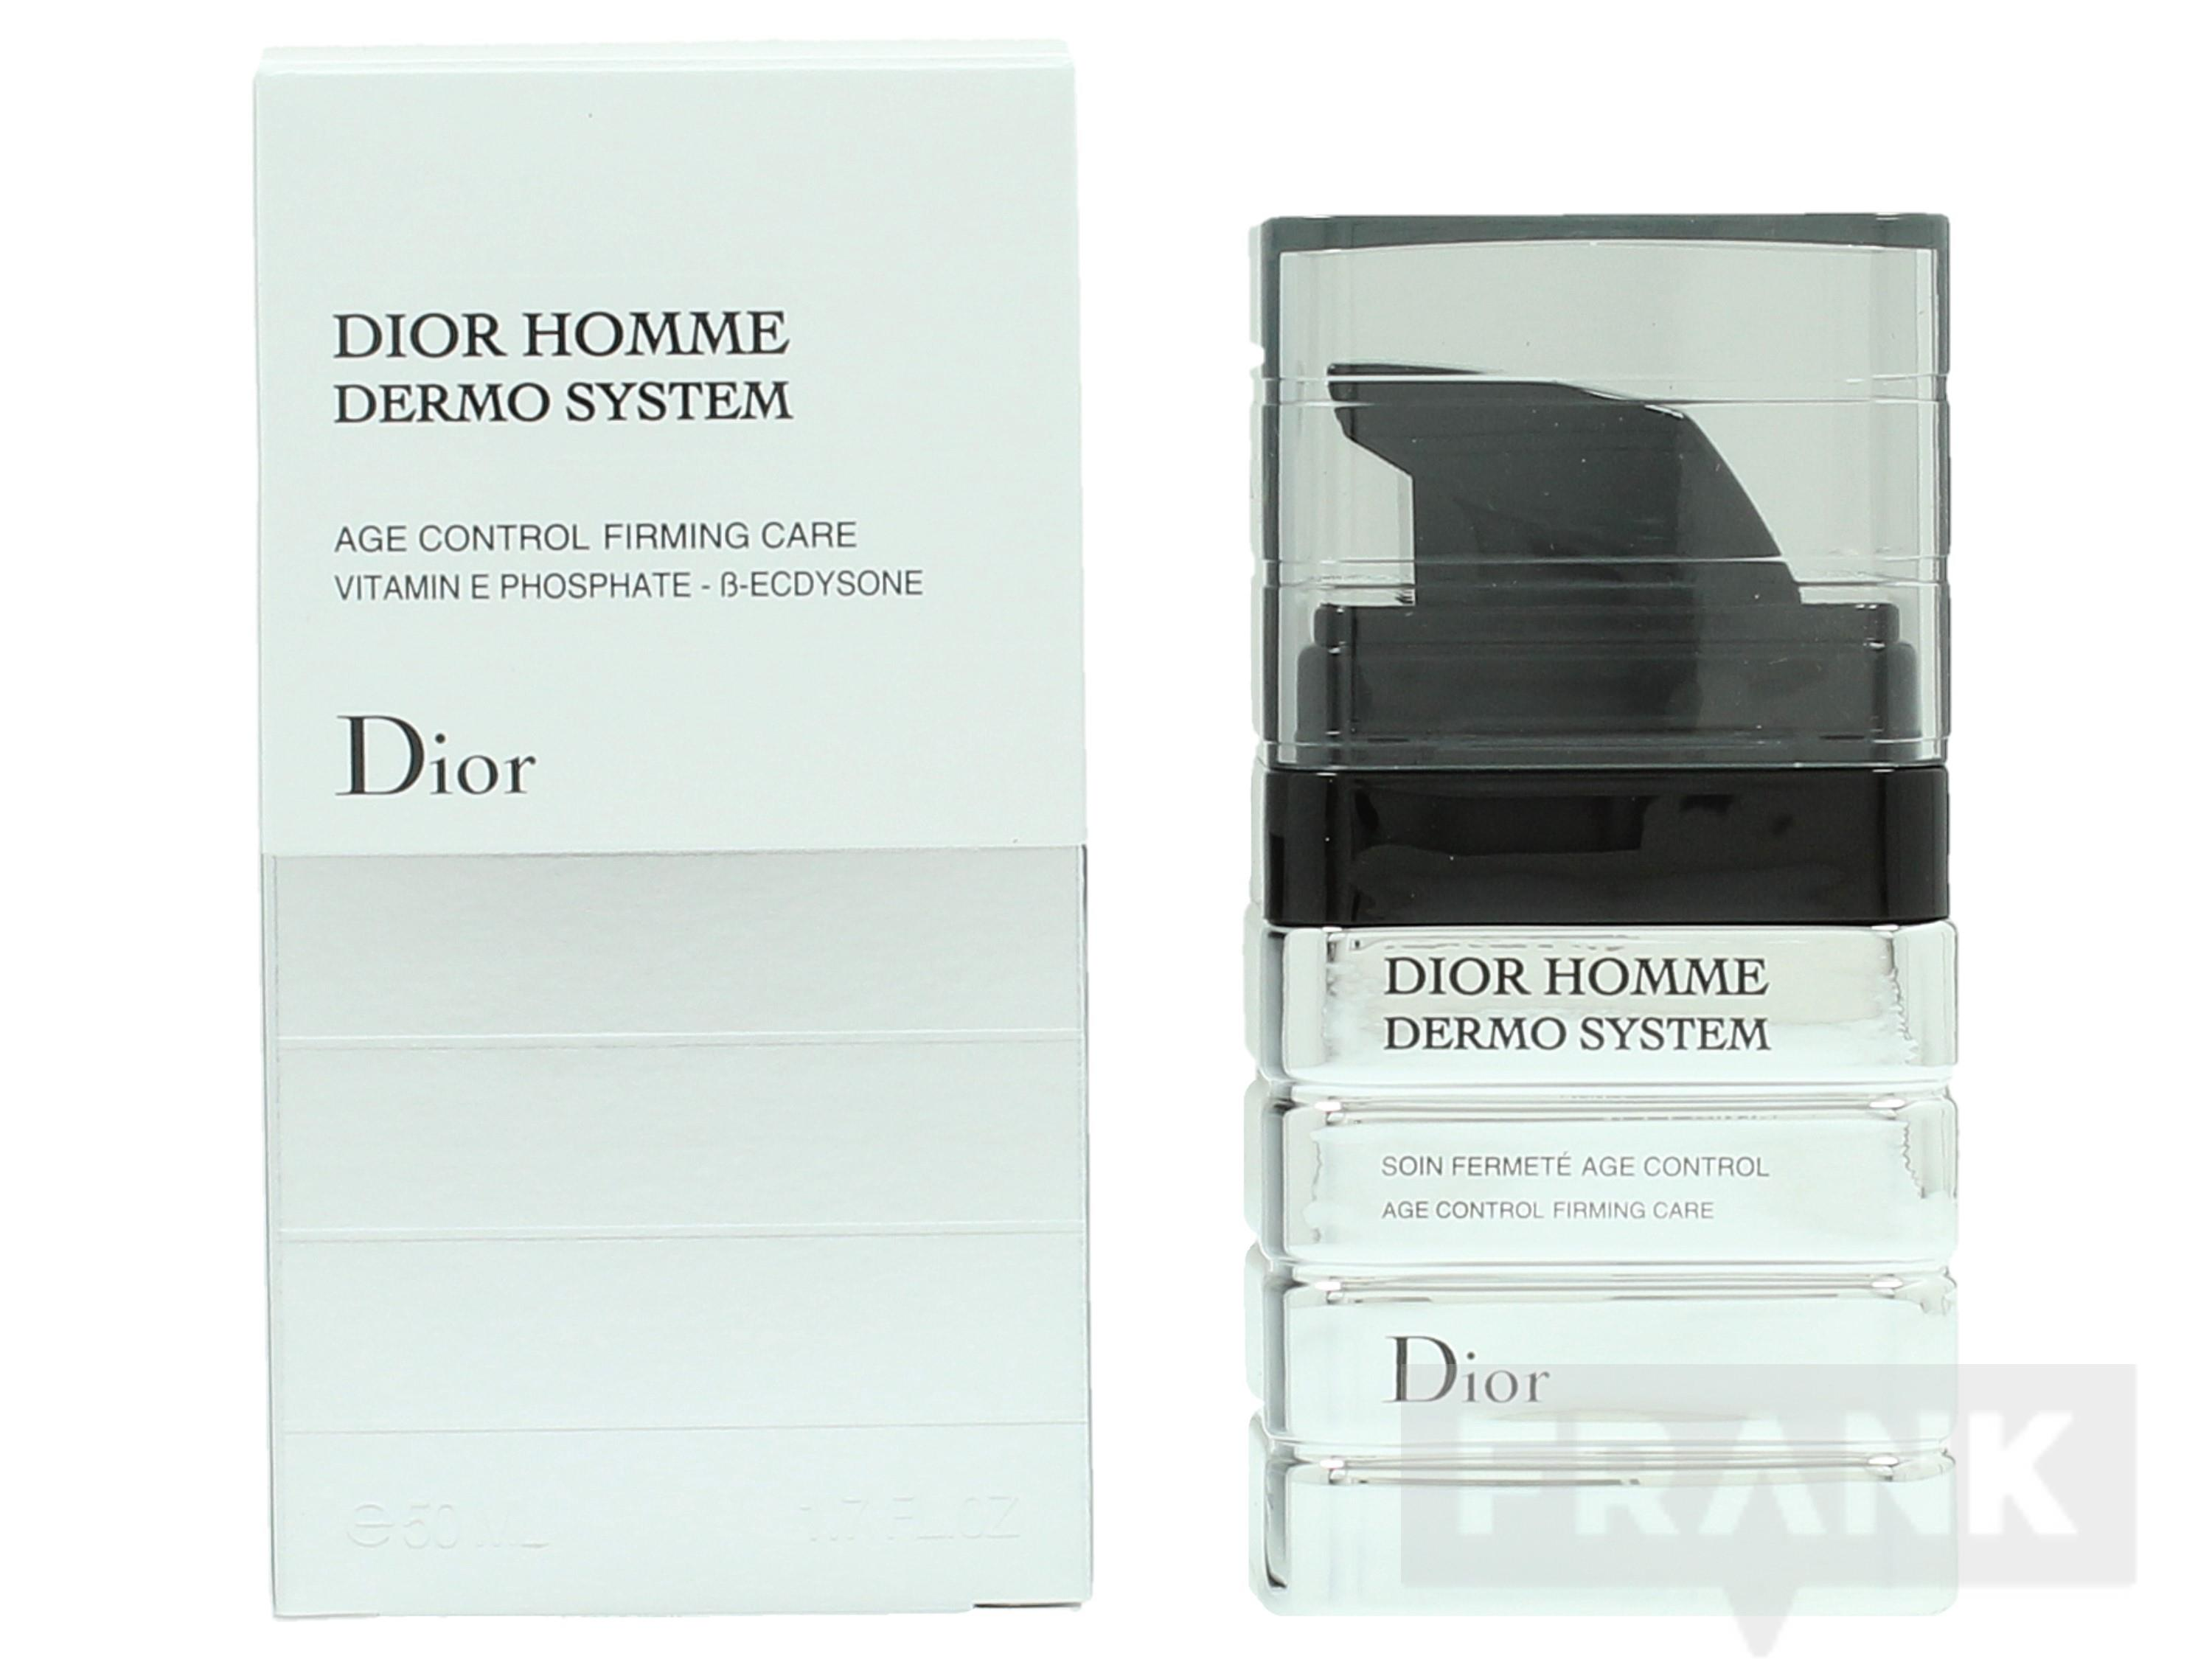 C.Dior Homme Dermo System Age Control Firm. Care 50ml